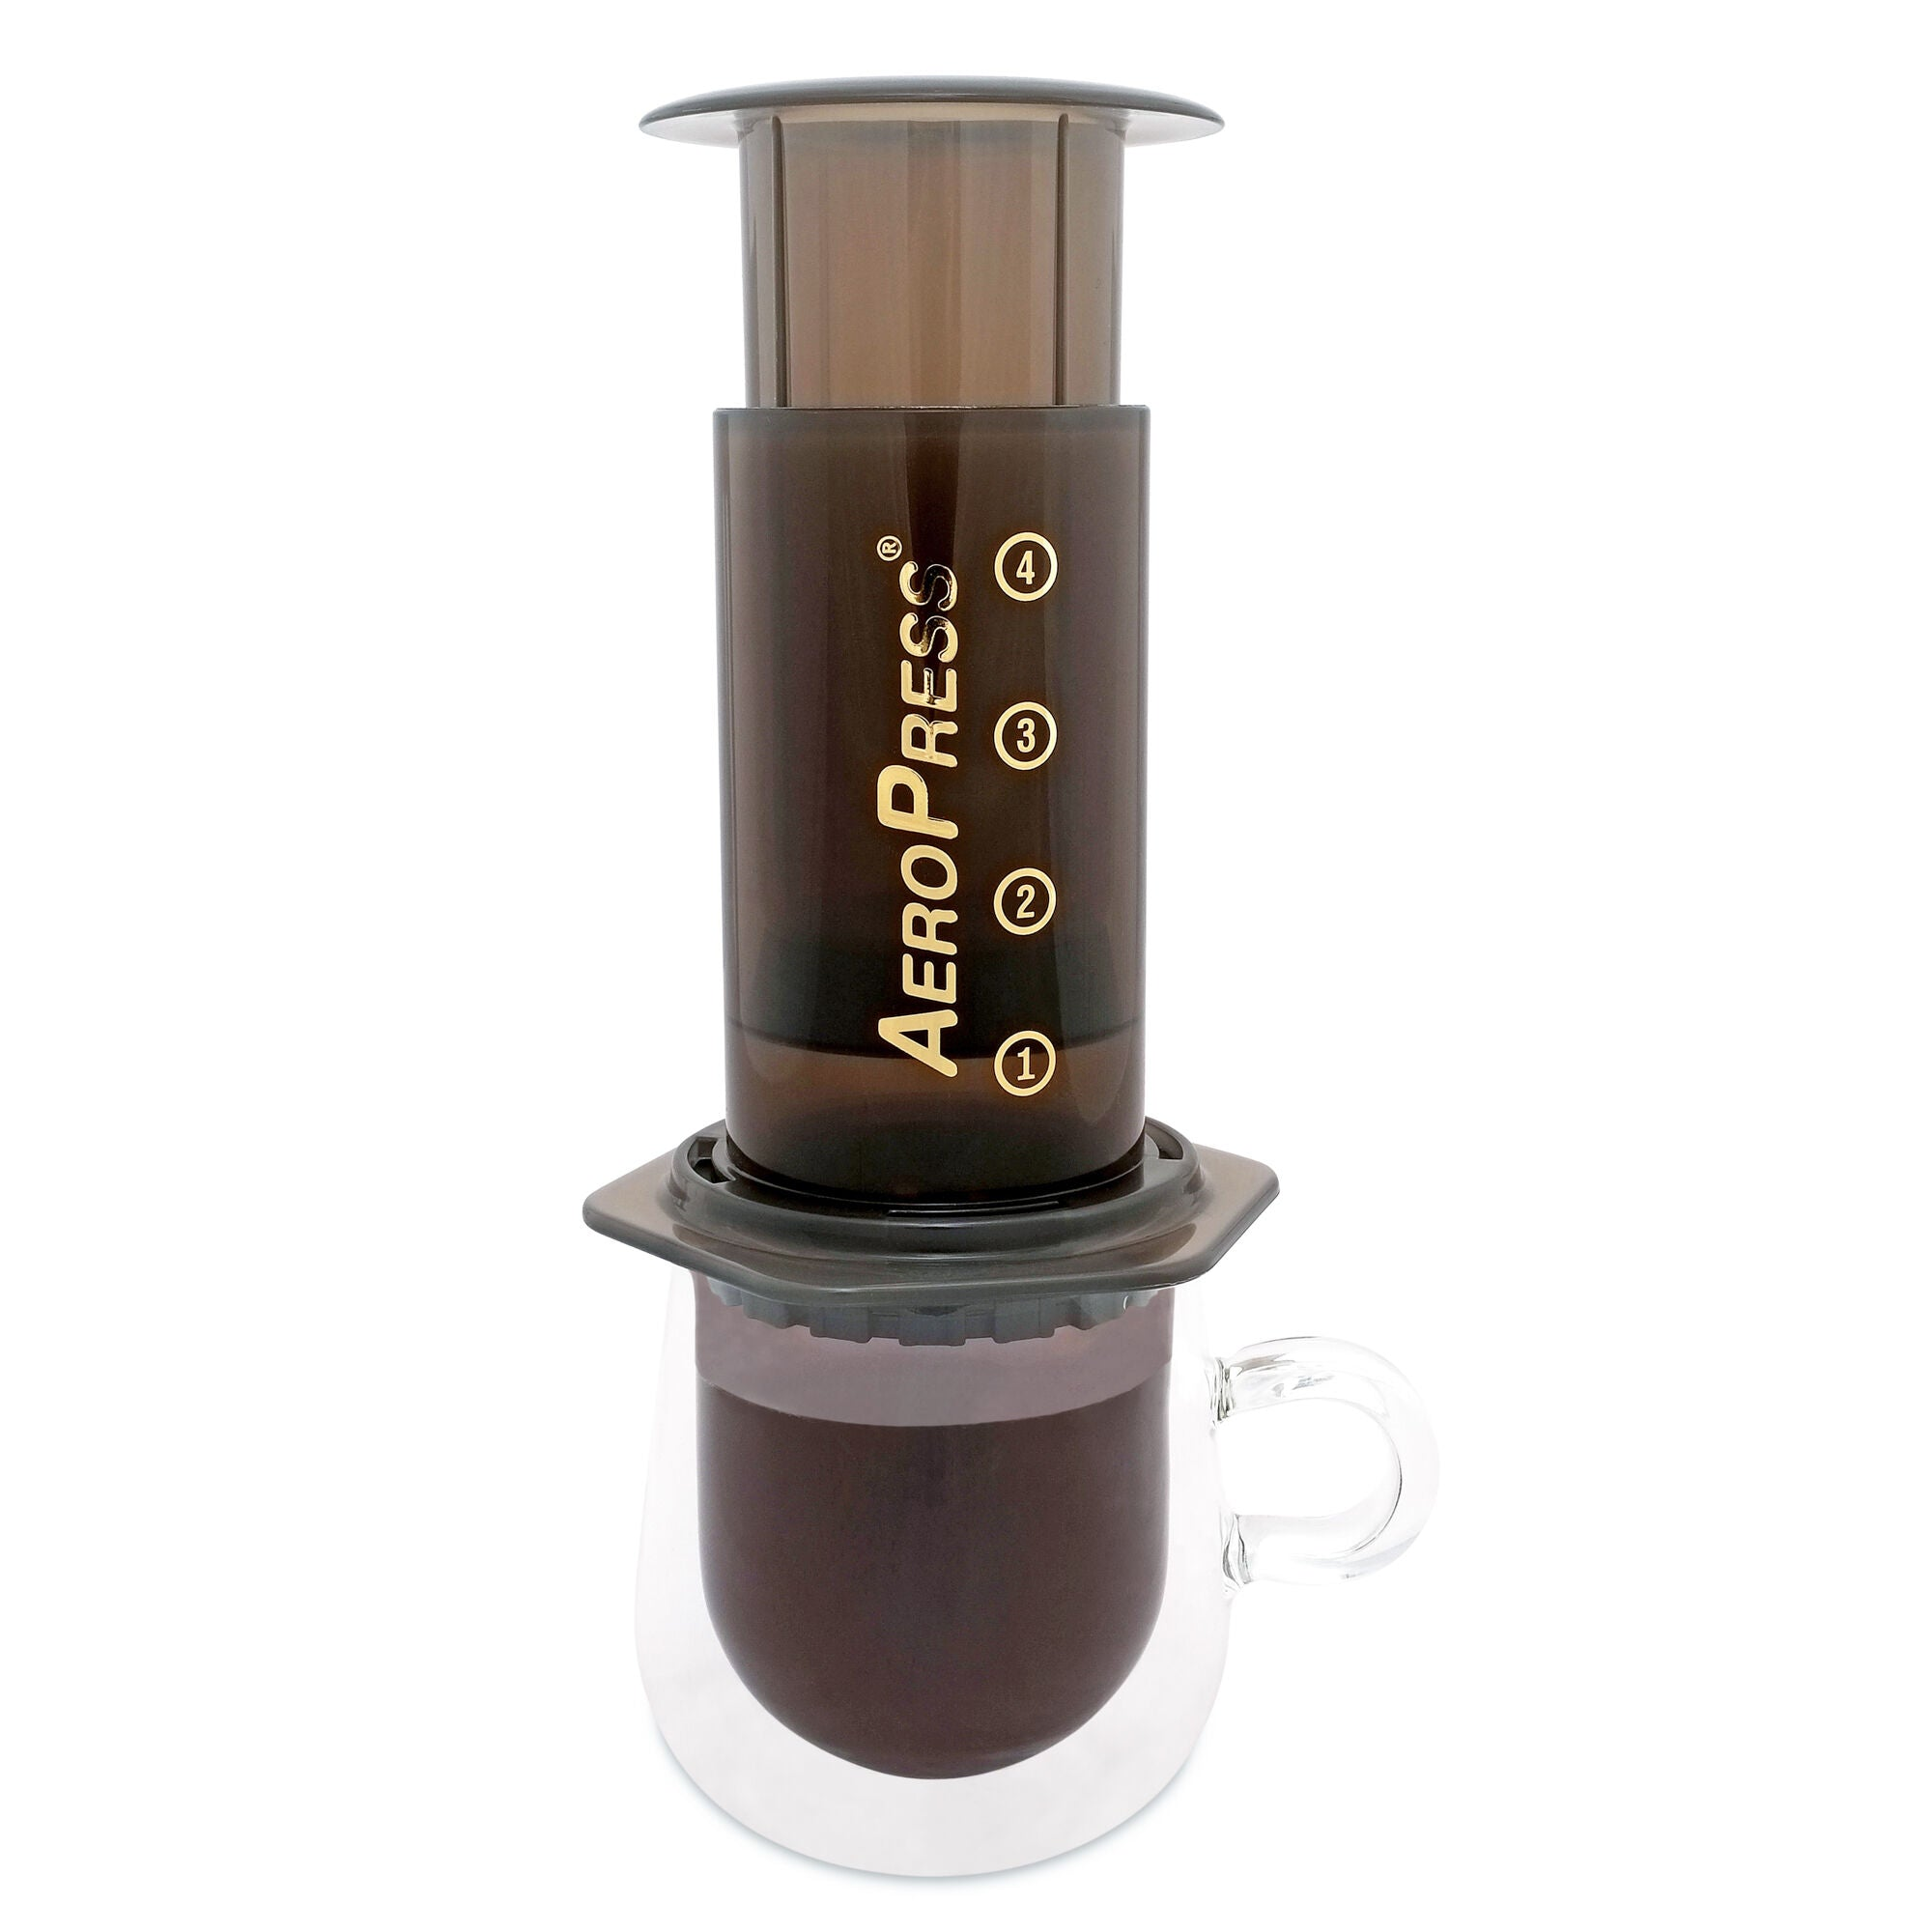 "Aeropress ""Aerobie"" Coffee Maker"